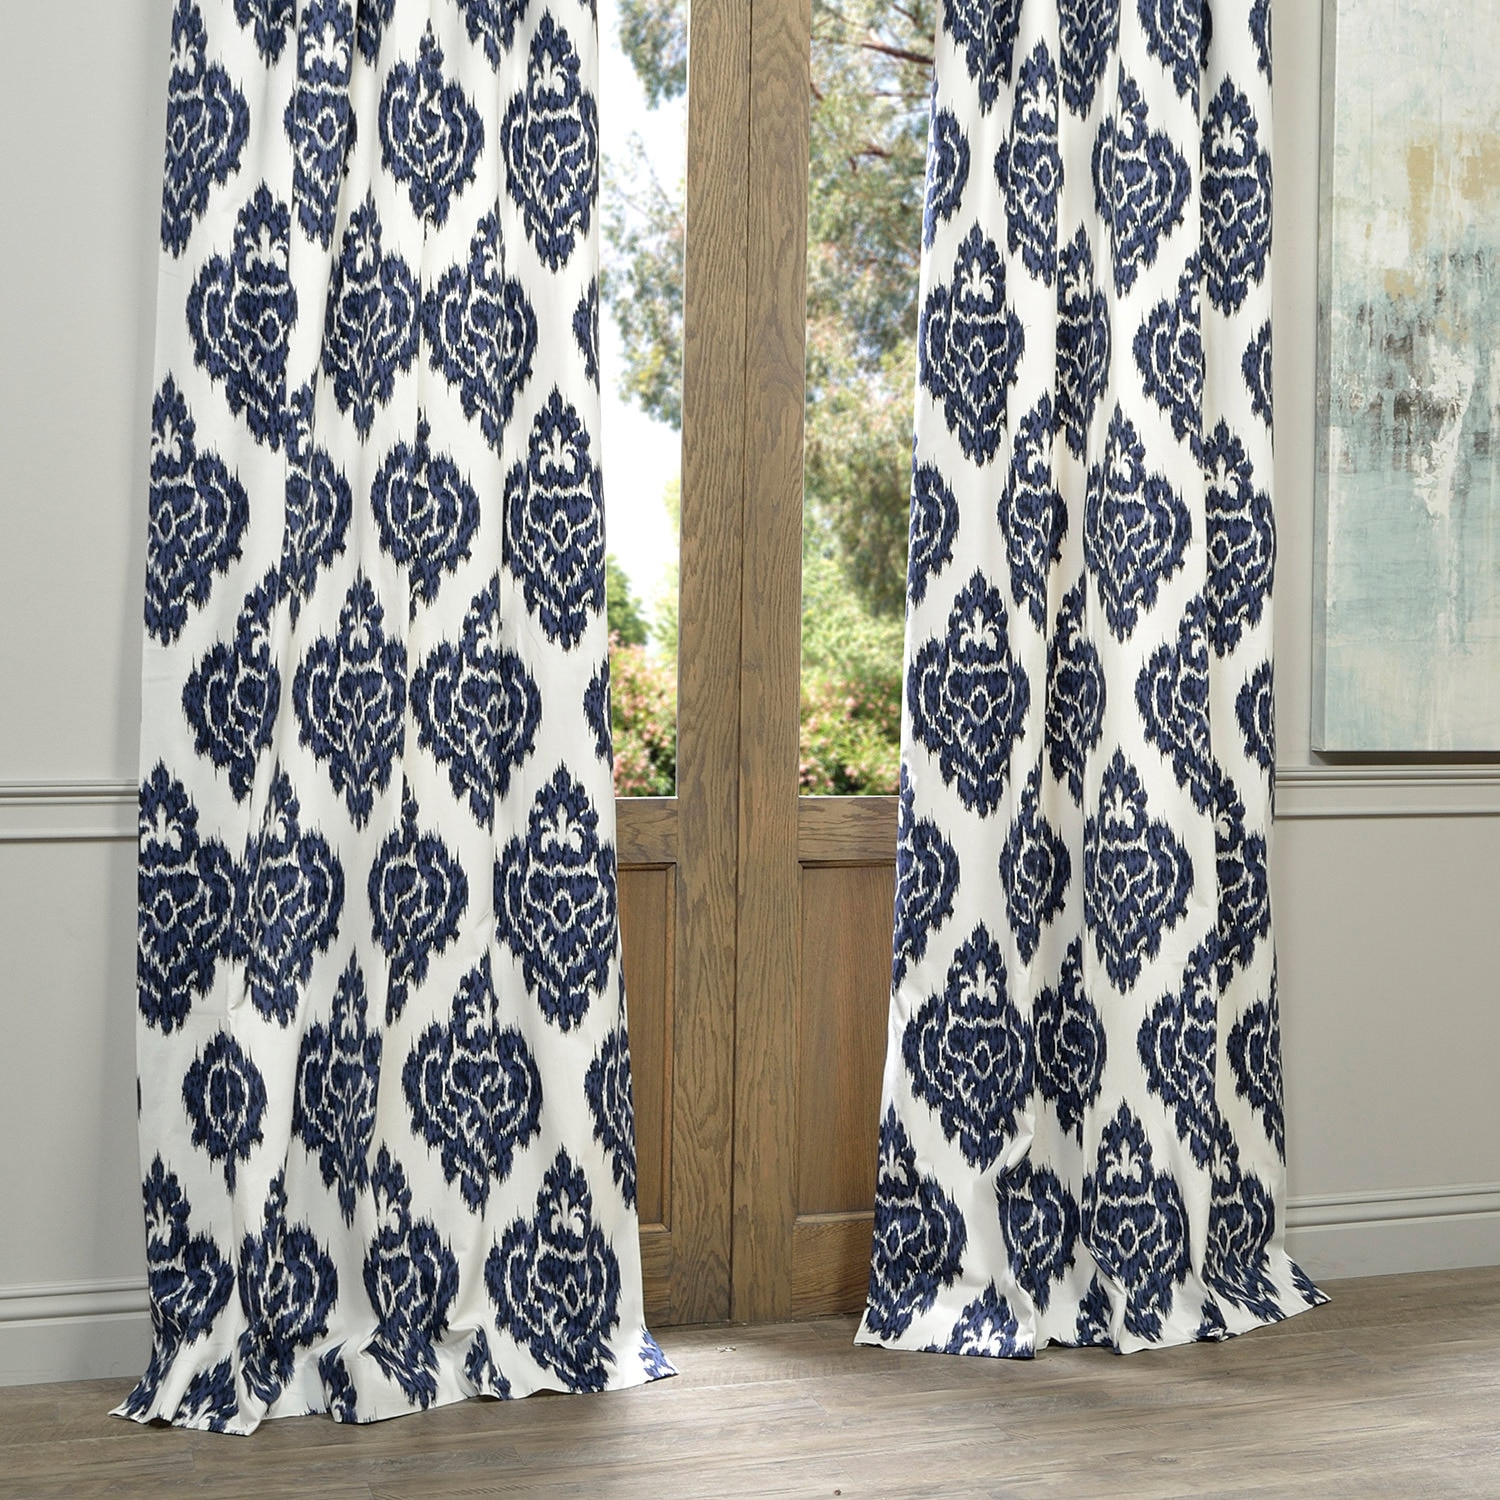 Exclusive Fabrics Ikat Blue Printed Cotton Curtain Panel With Ikat Blue Printed Cotton Curtain Panels (View 10 of 20)